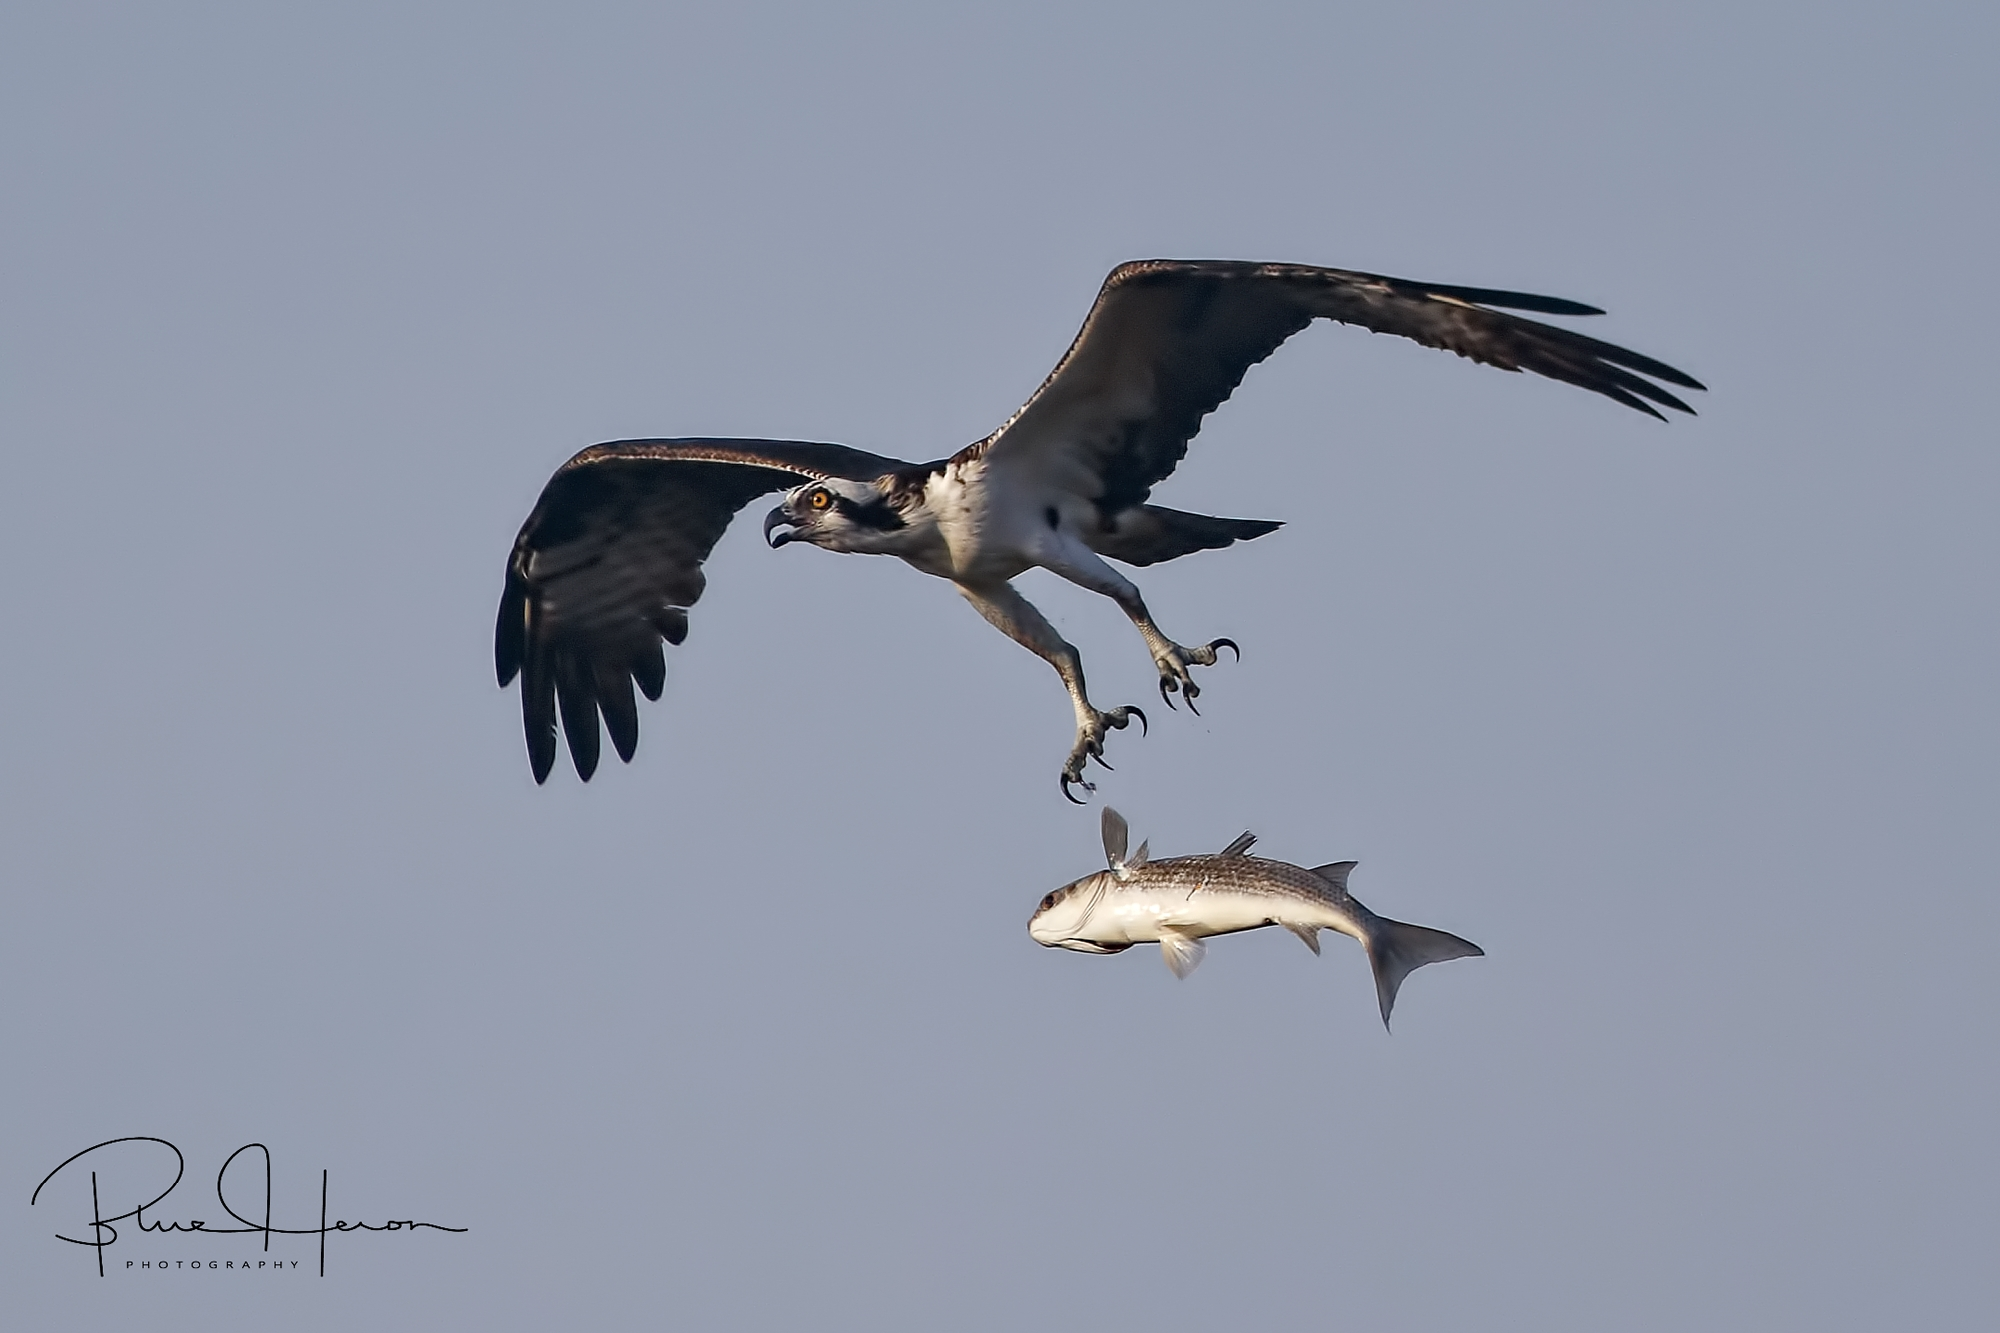 The fish comes loose from the Ospreys grip..not a good day for the Osprey